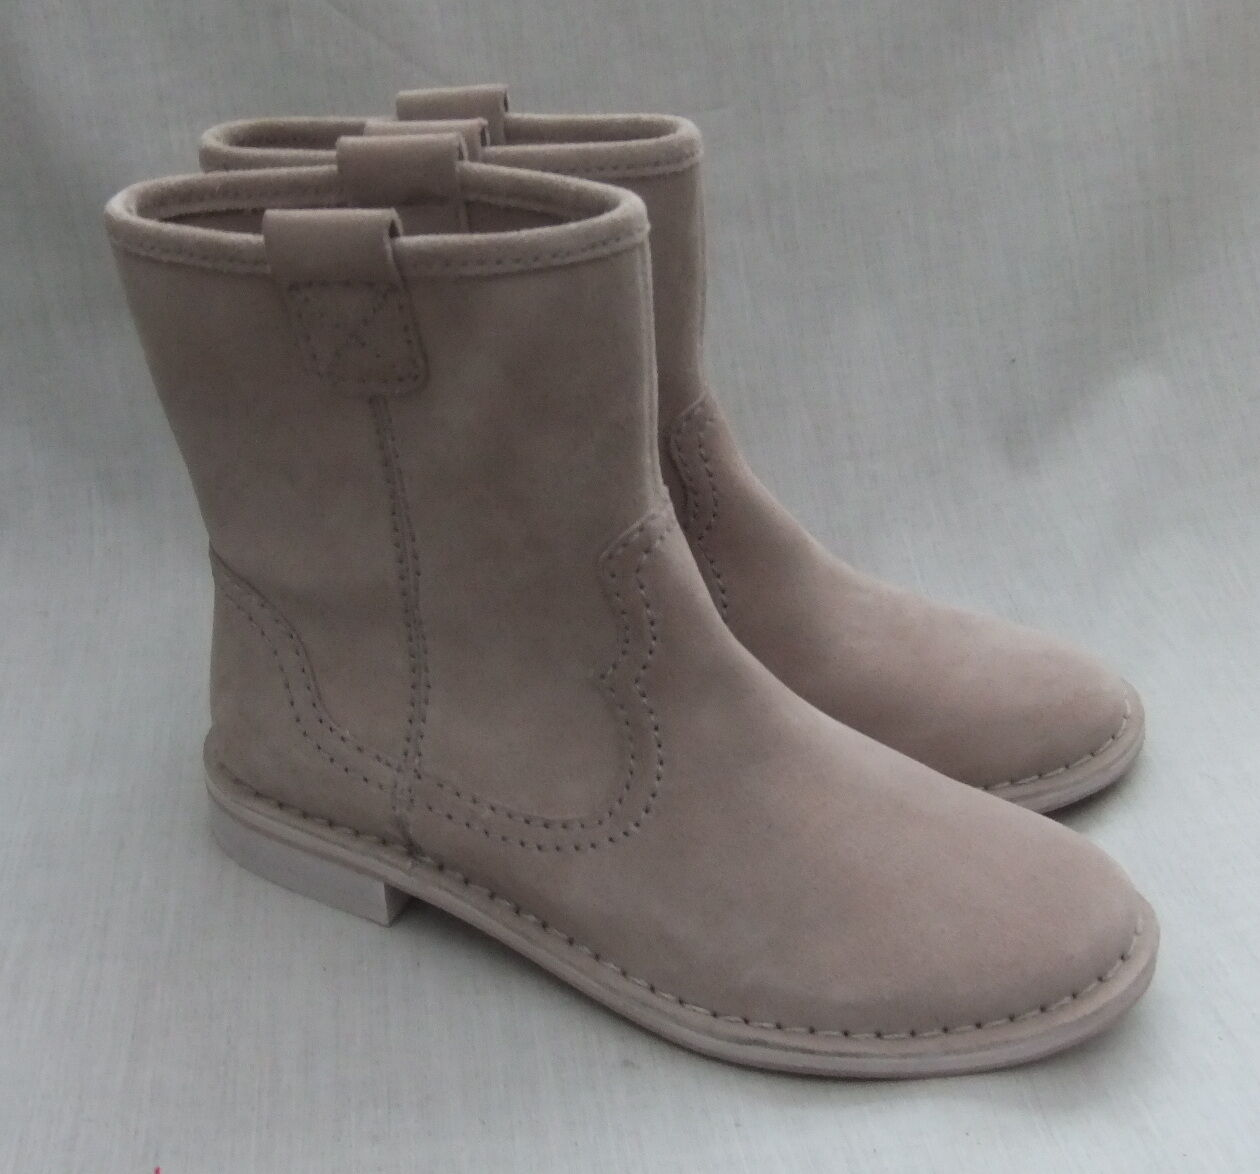 NEW CLARKS Stiefel CABARET ROCK Damenschuhe SHINGLE Stiefel SUEDE Stiefel SHINGLE fc2e7f